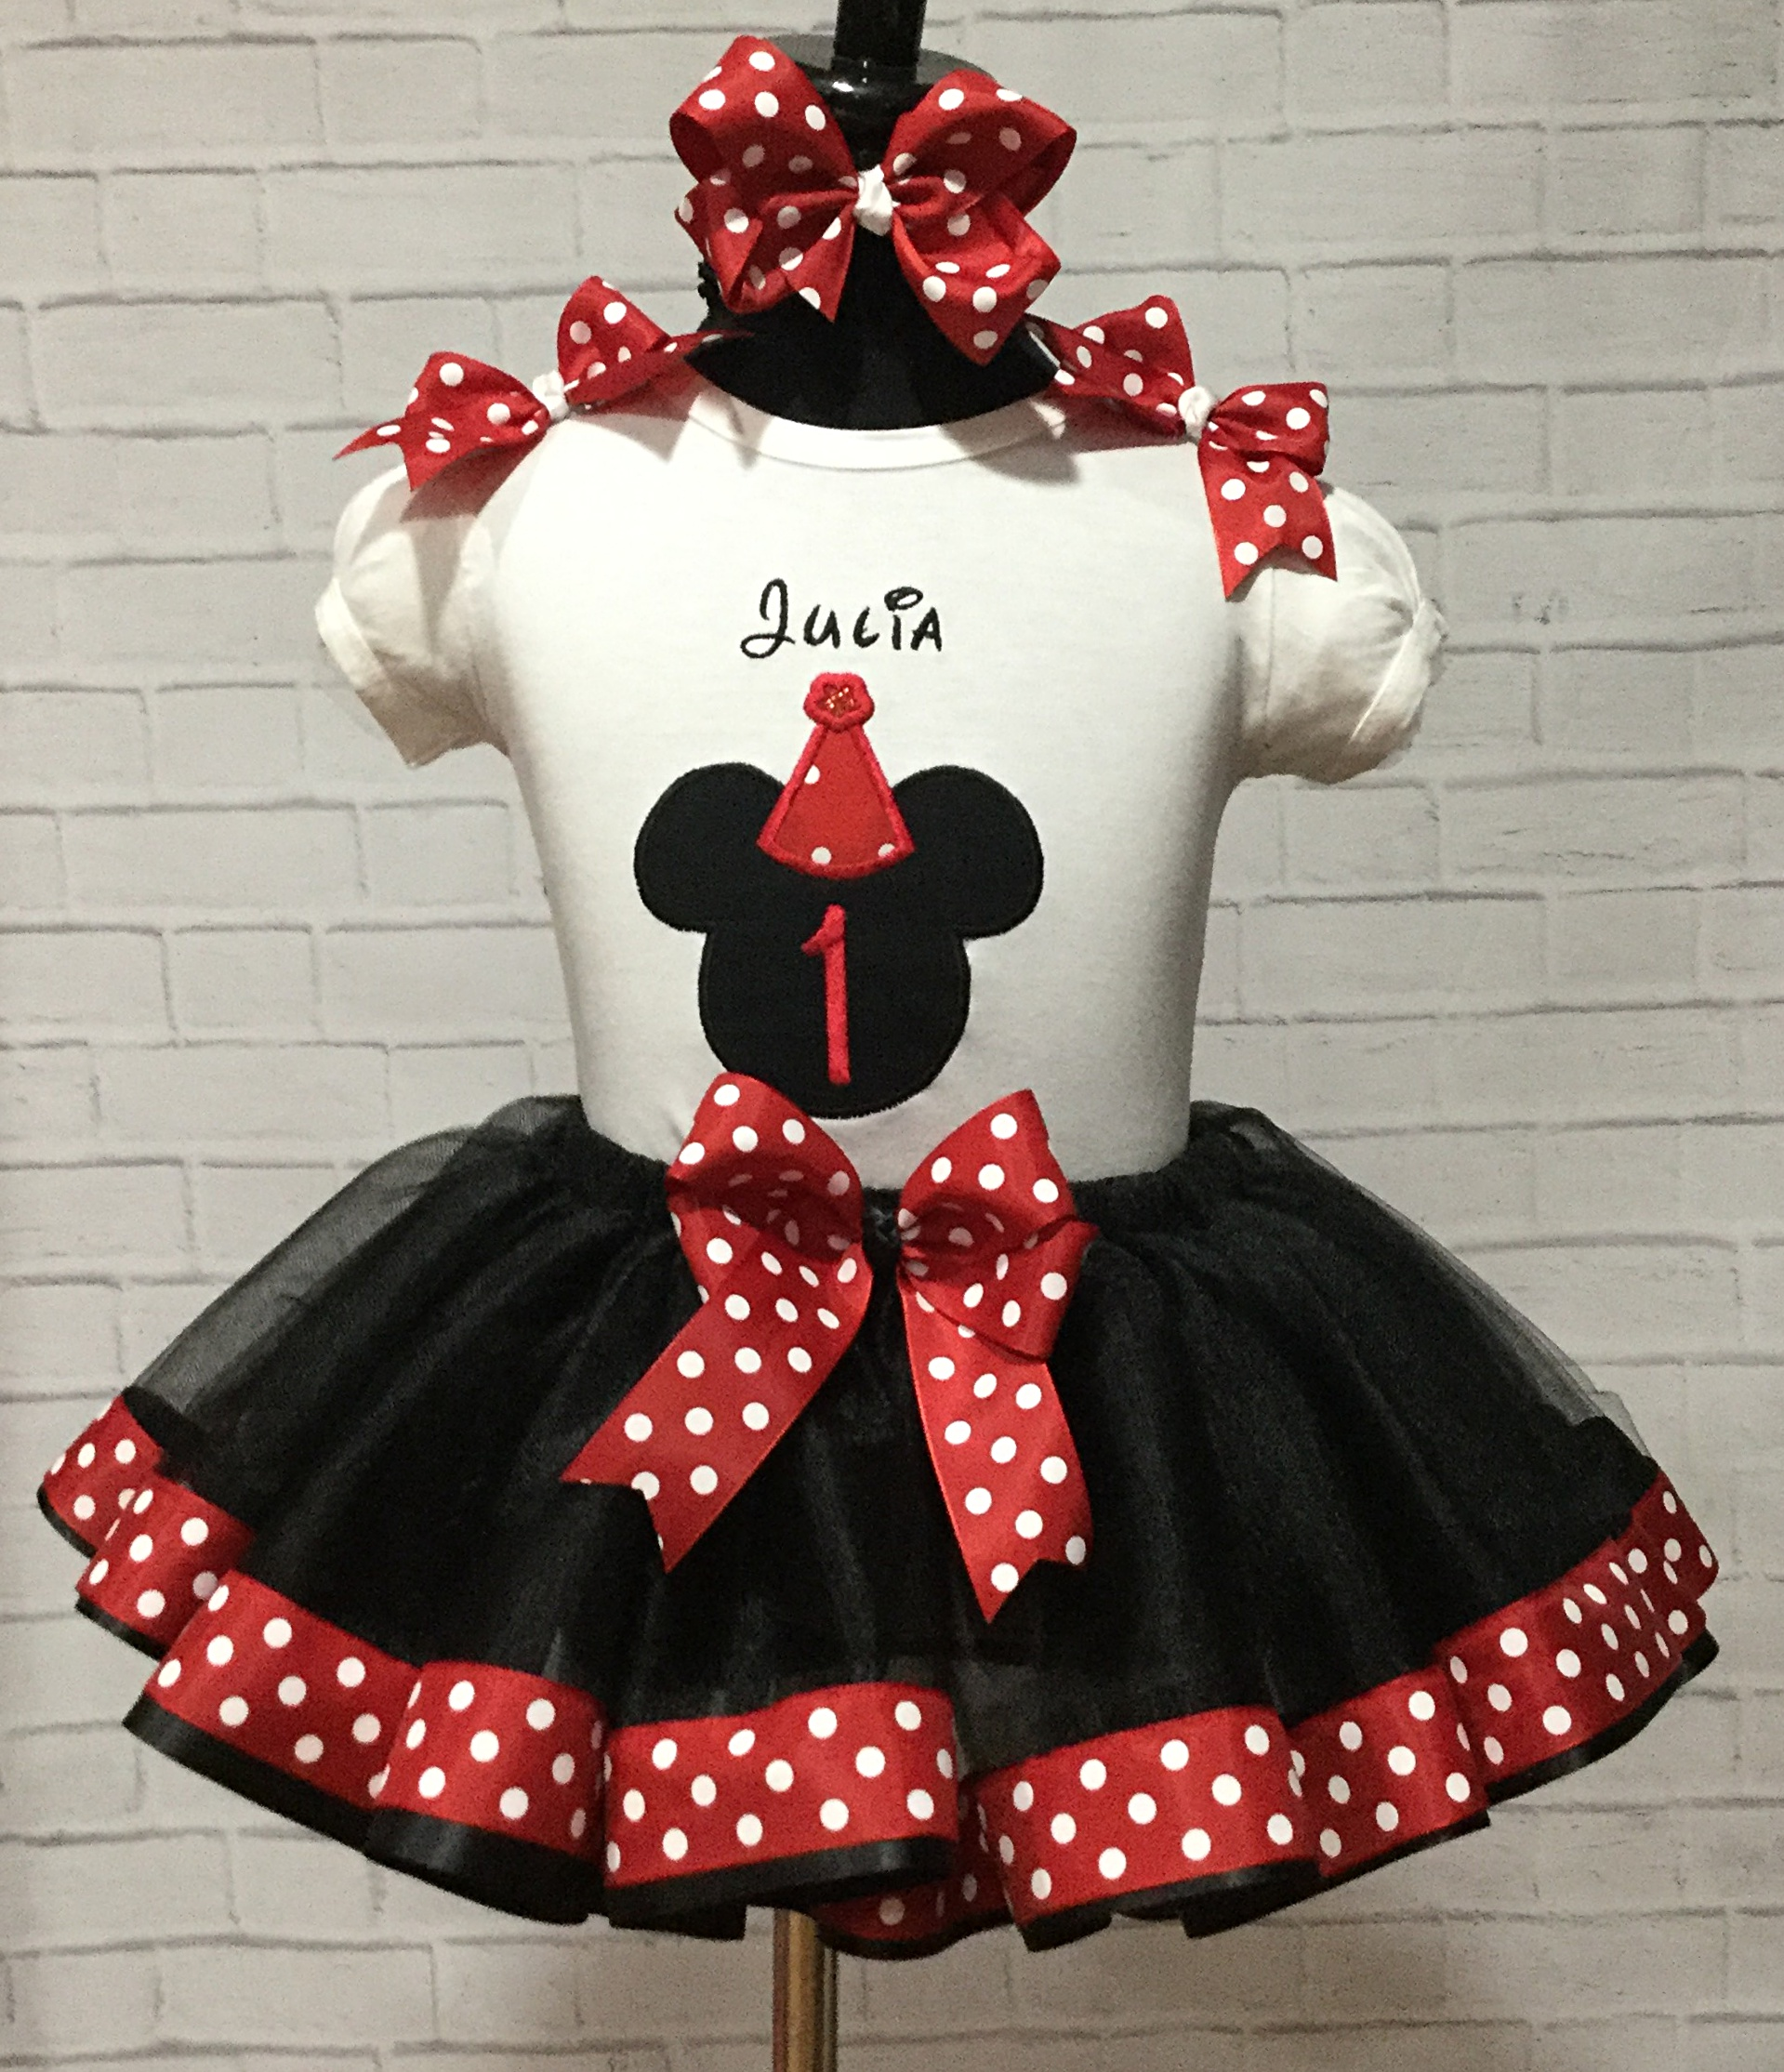 3280aba92 Girls Minnie Mouse Skirt Red And White Polka Dot Twirl 6 9 12 - Year ...